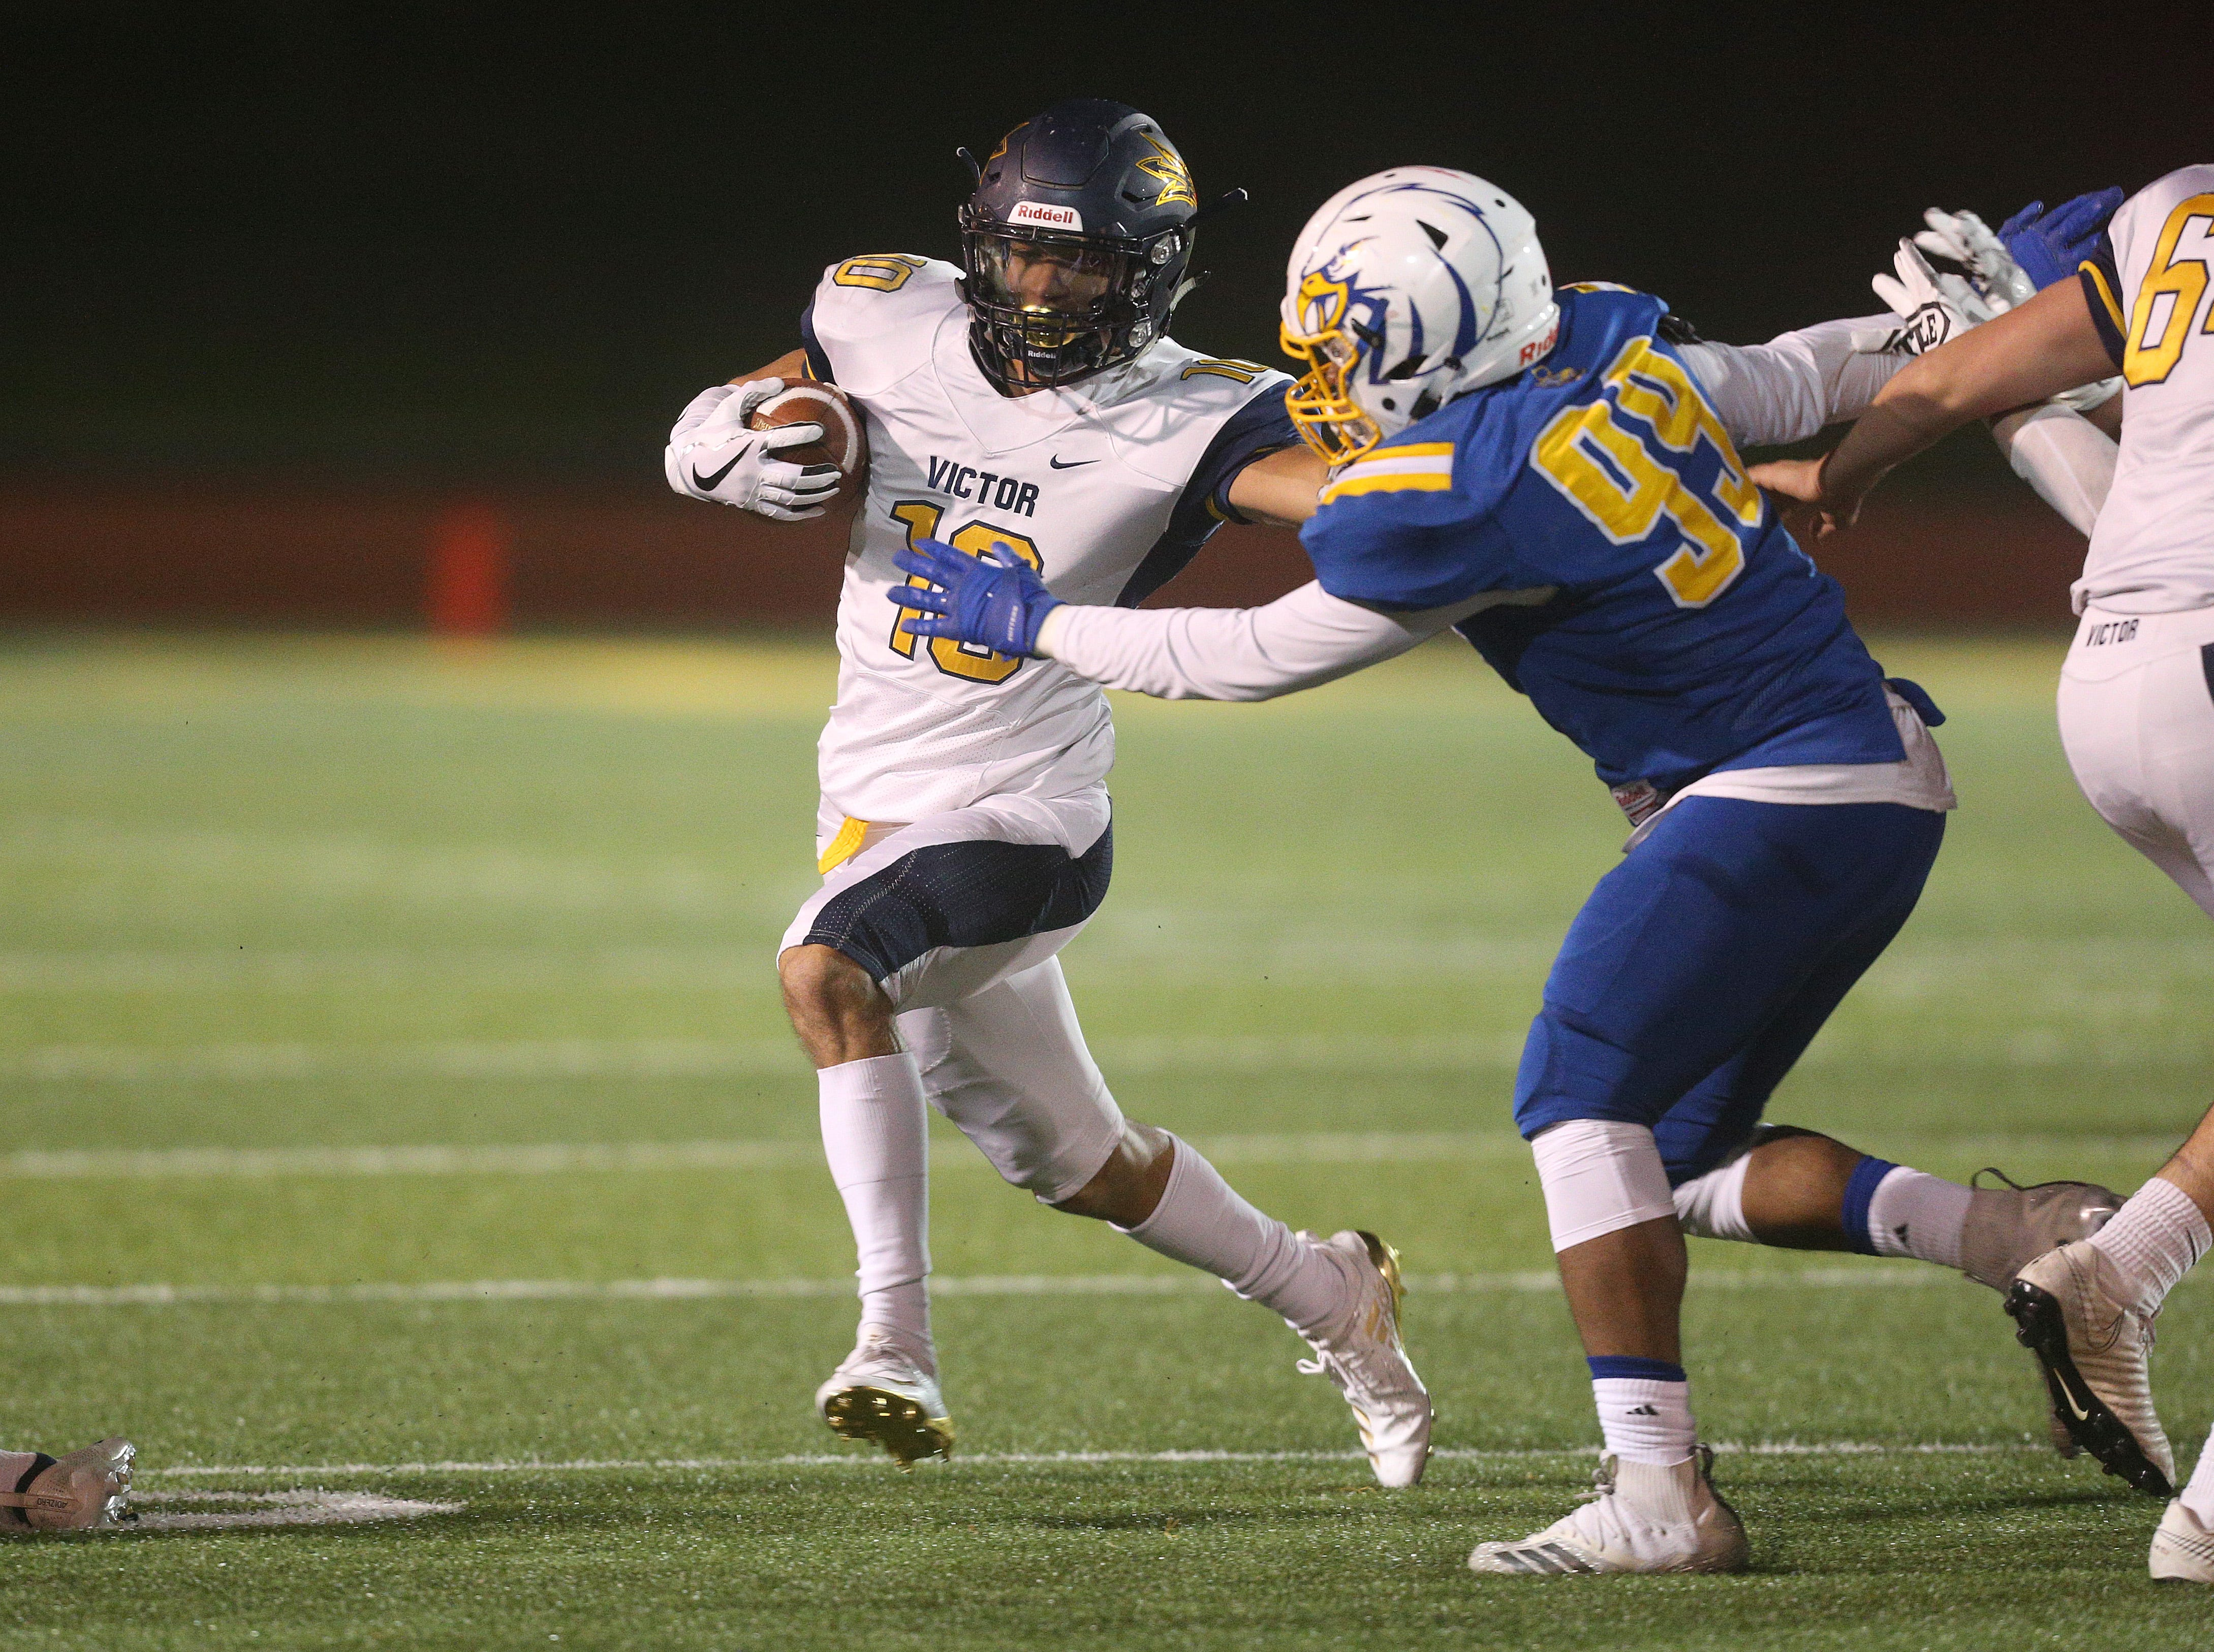 Victor's Kordell Jackson tries to fight off a tackle by Irondequoit's Cameron Martin (99).